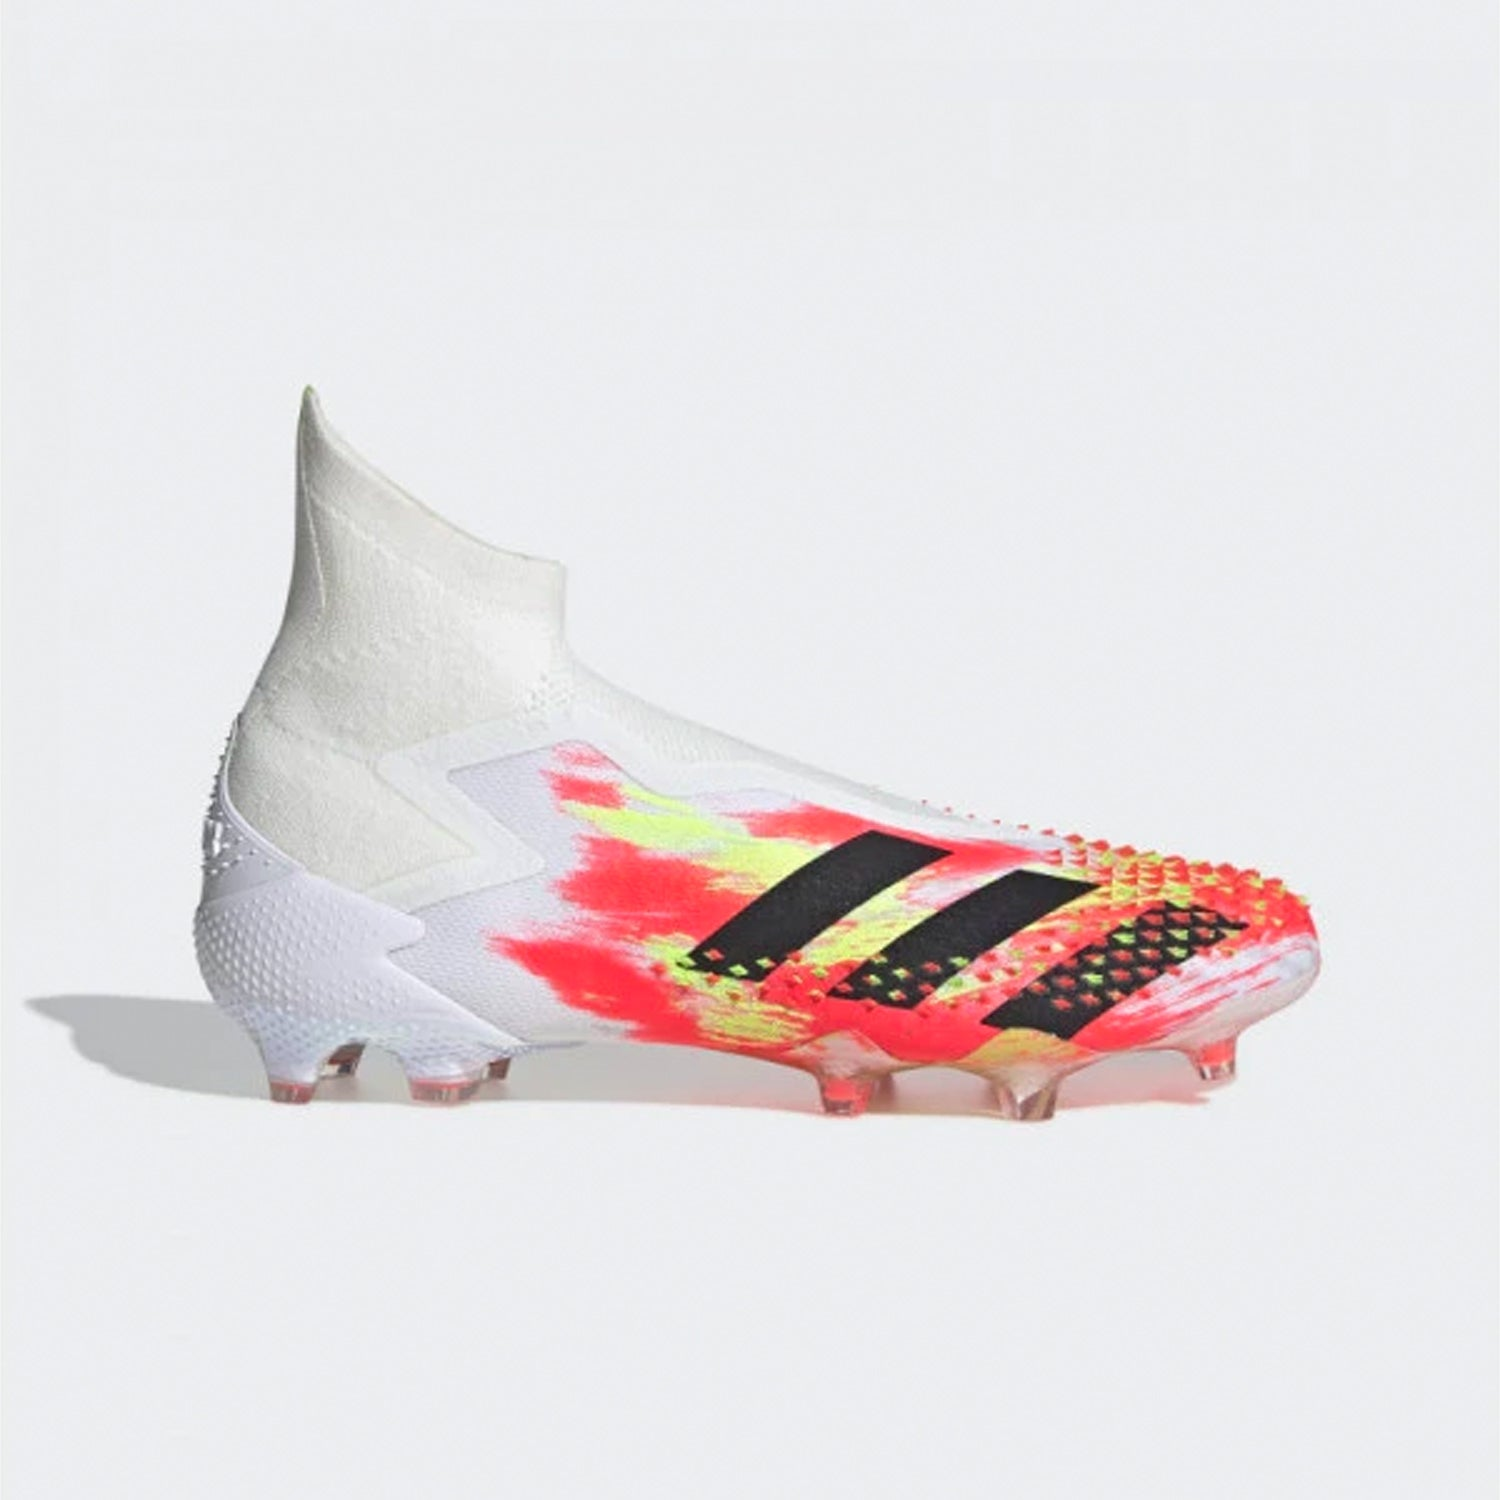 Predator Mutator 20+ FirmGround Soccer Shoes